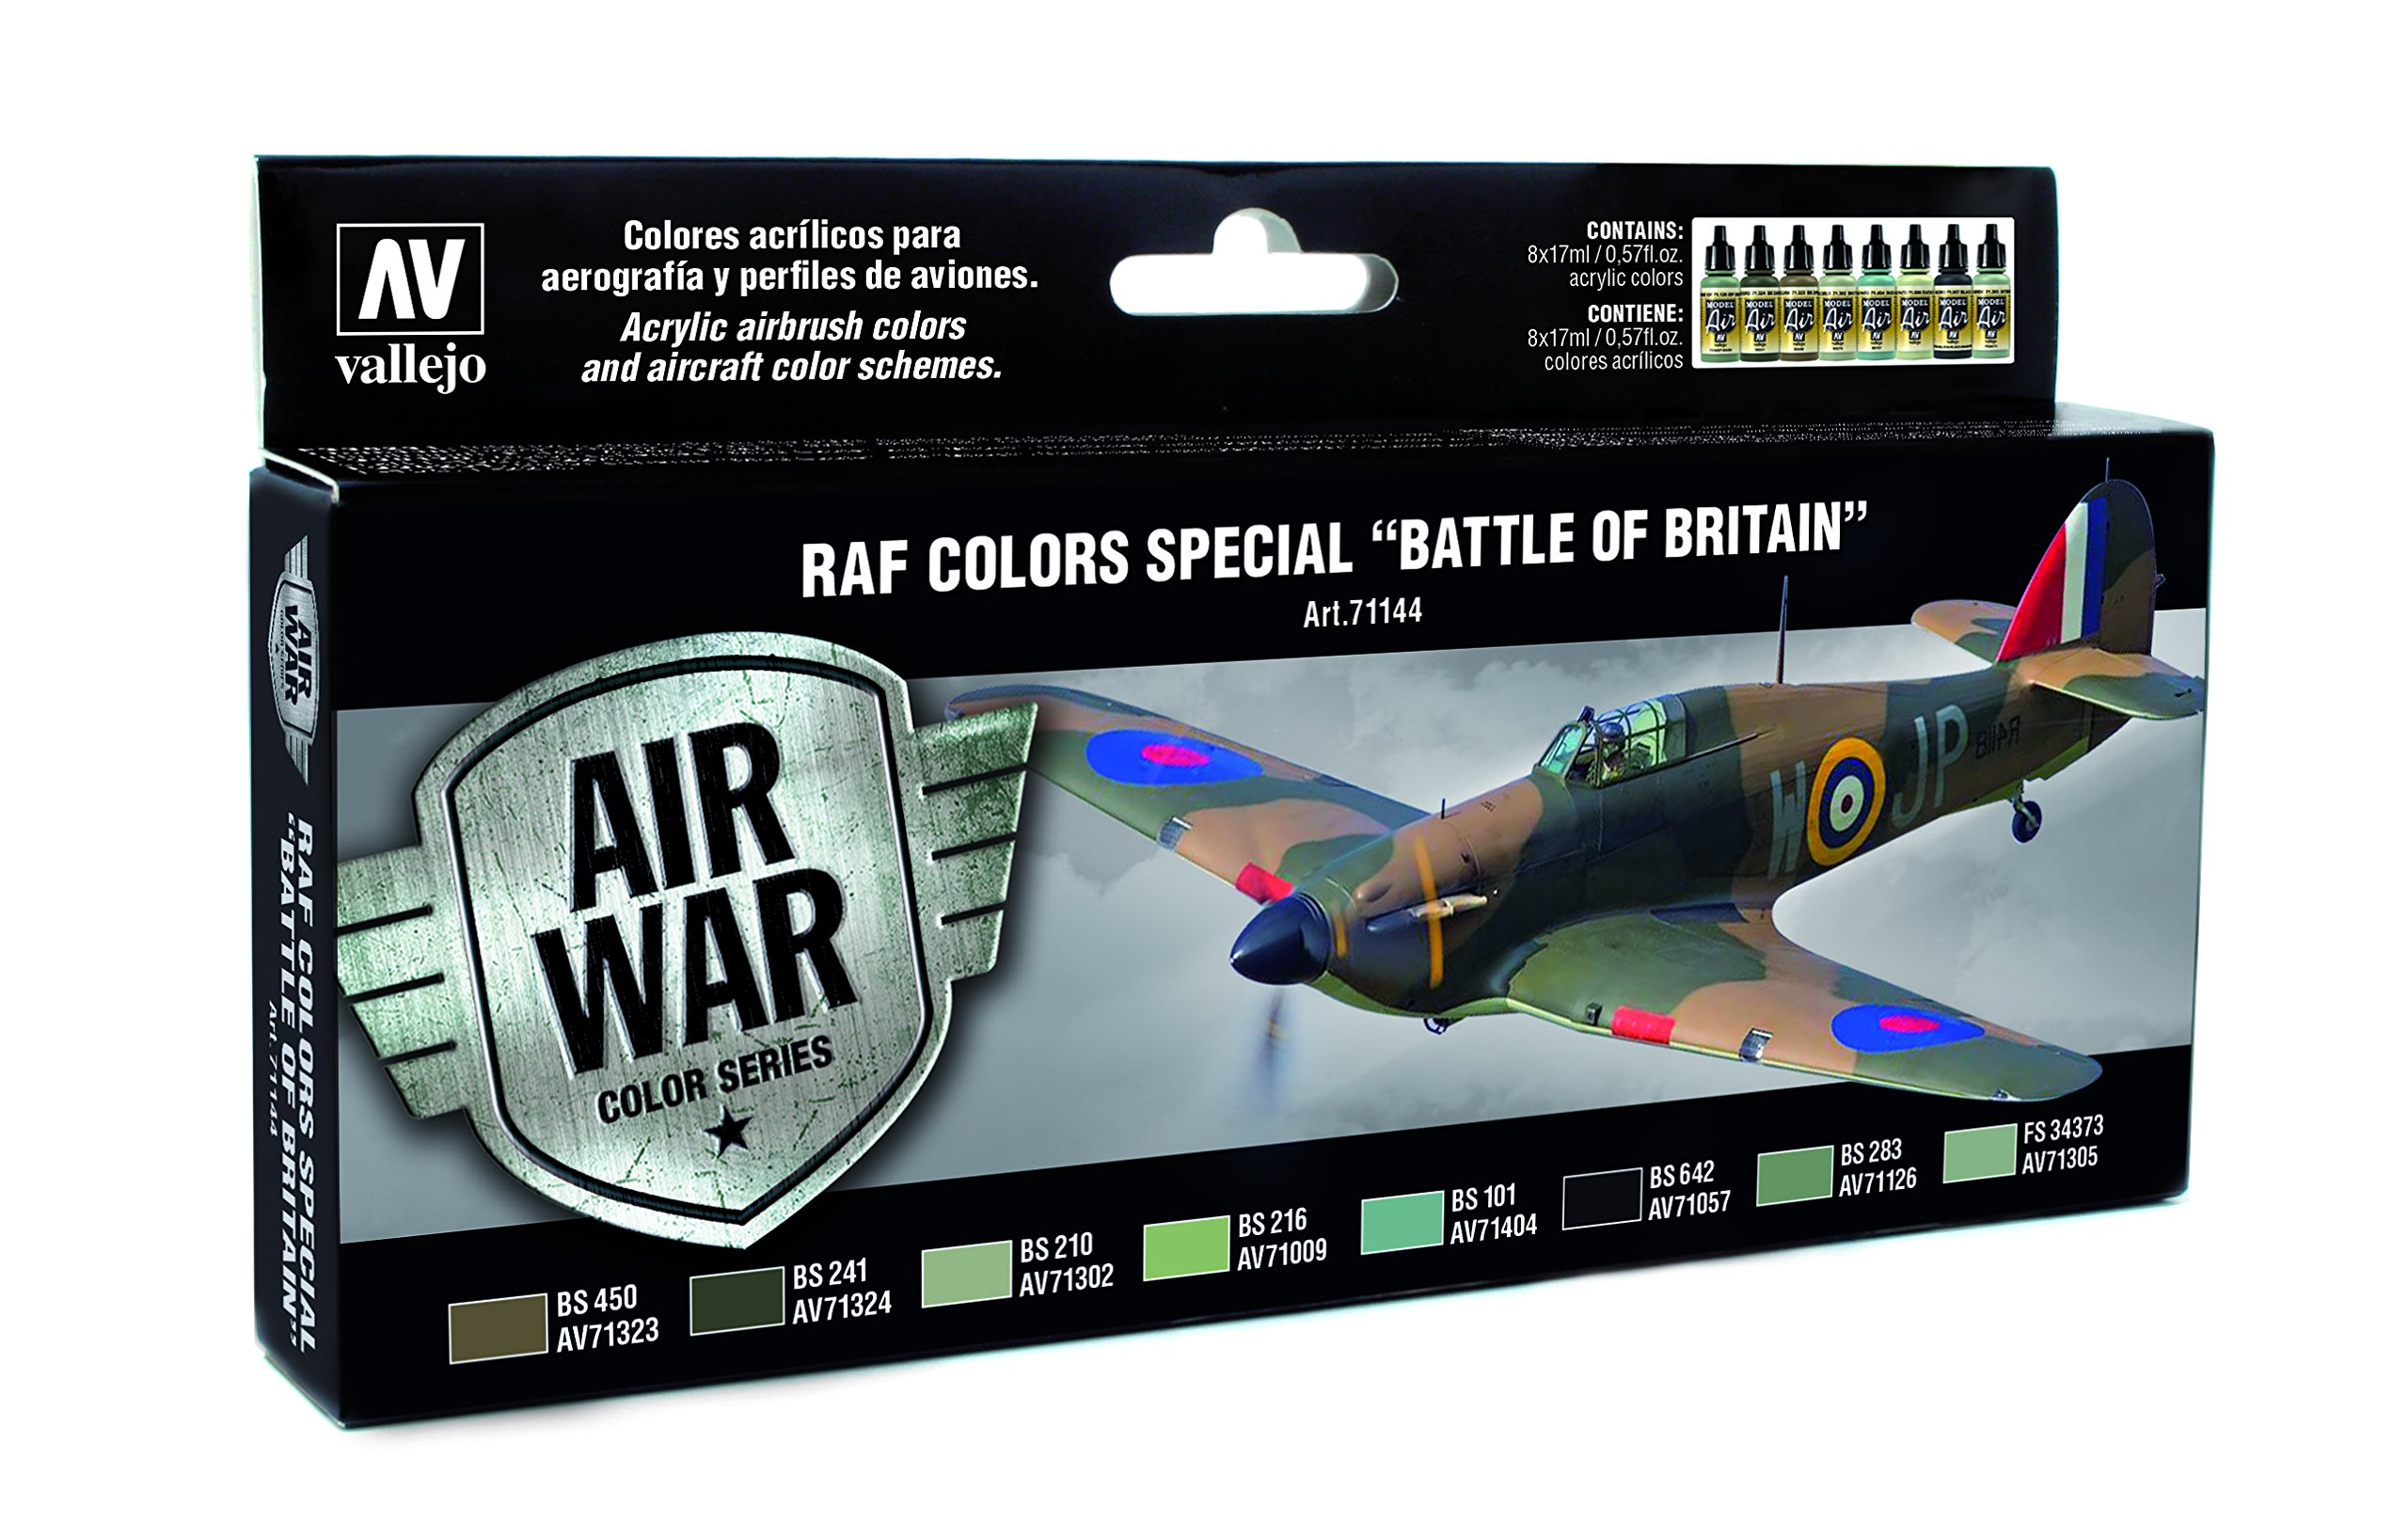 Vallejo RAF Colors Special Battle of Britain 'Air War Color Series' Model Paint Kit, contains 8 x 17ml bottles